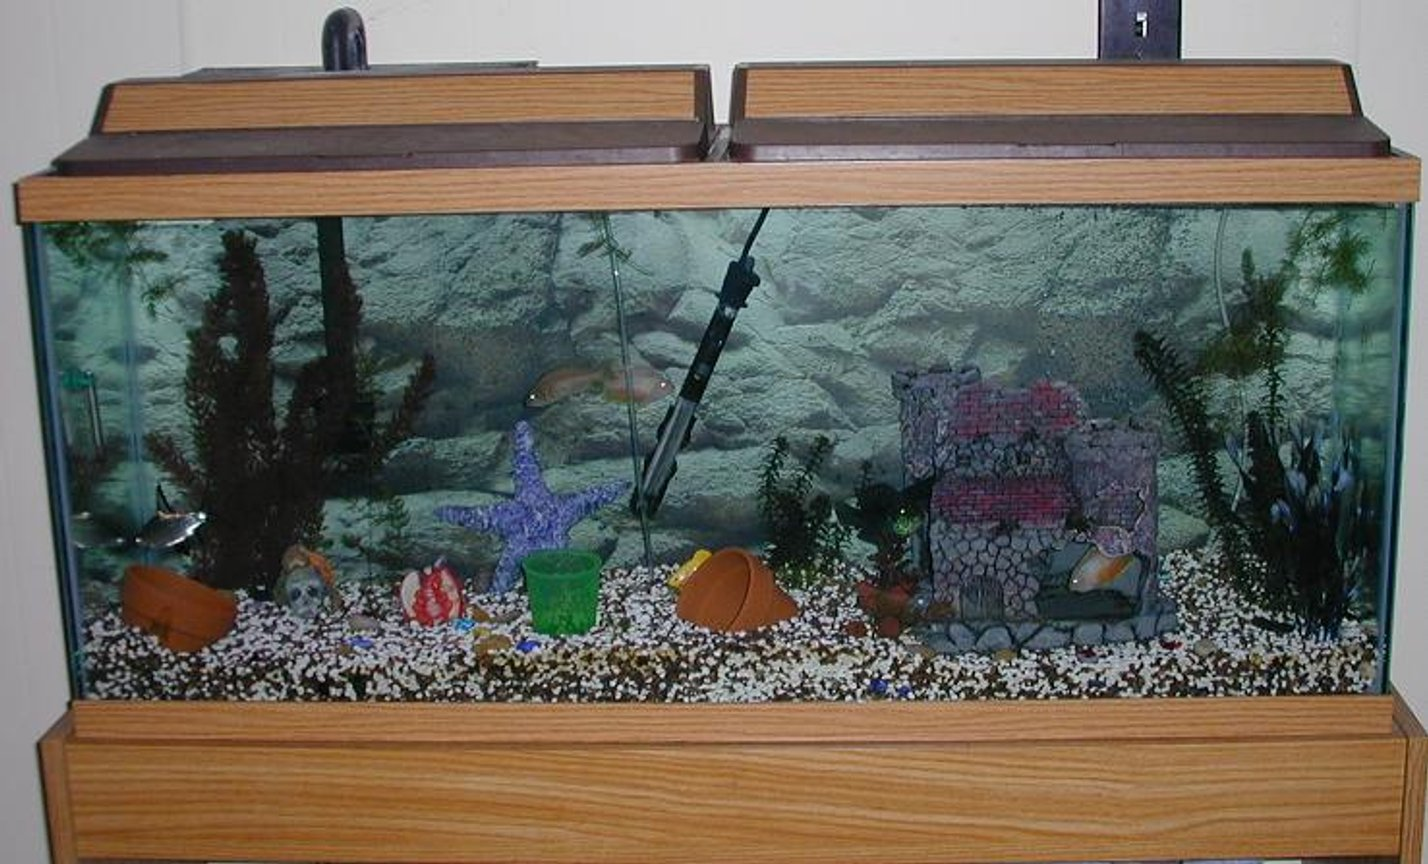 55 gallons freshwater fish tank (mostly fish and non-living decorations) - This is our 55 gallon tank